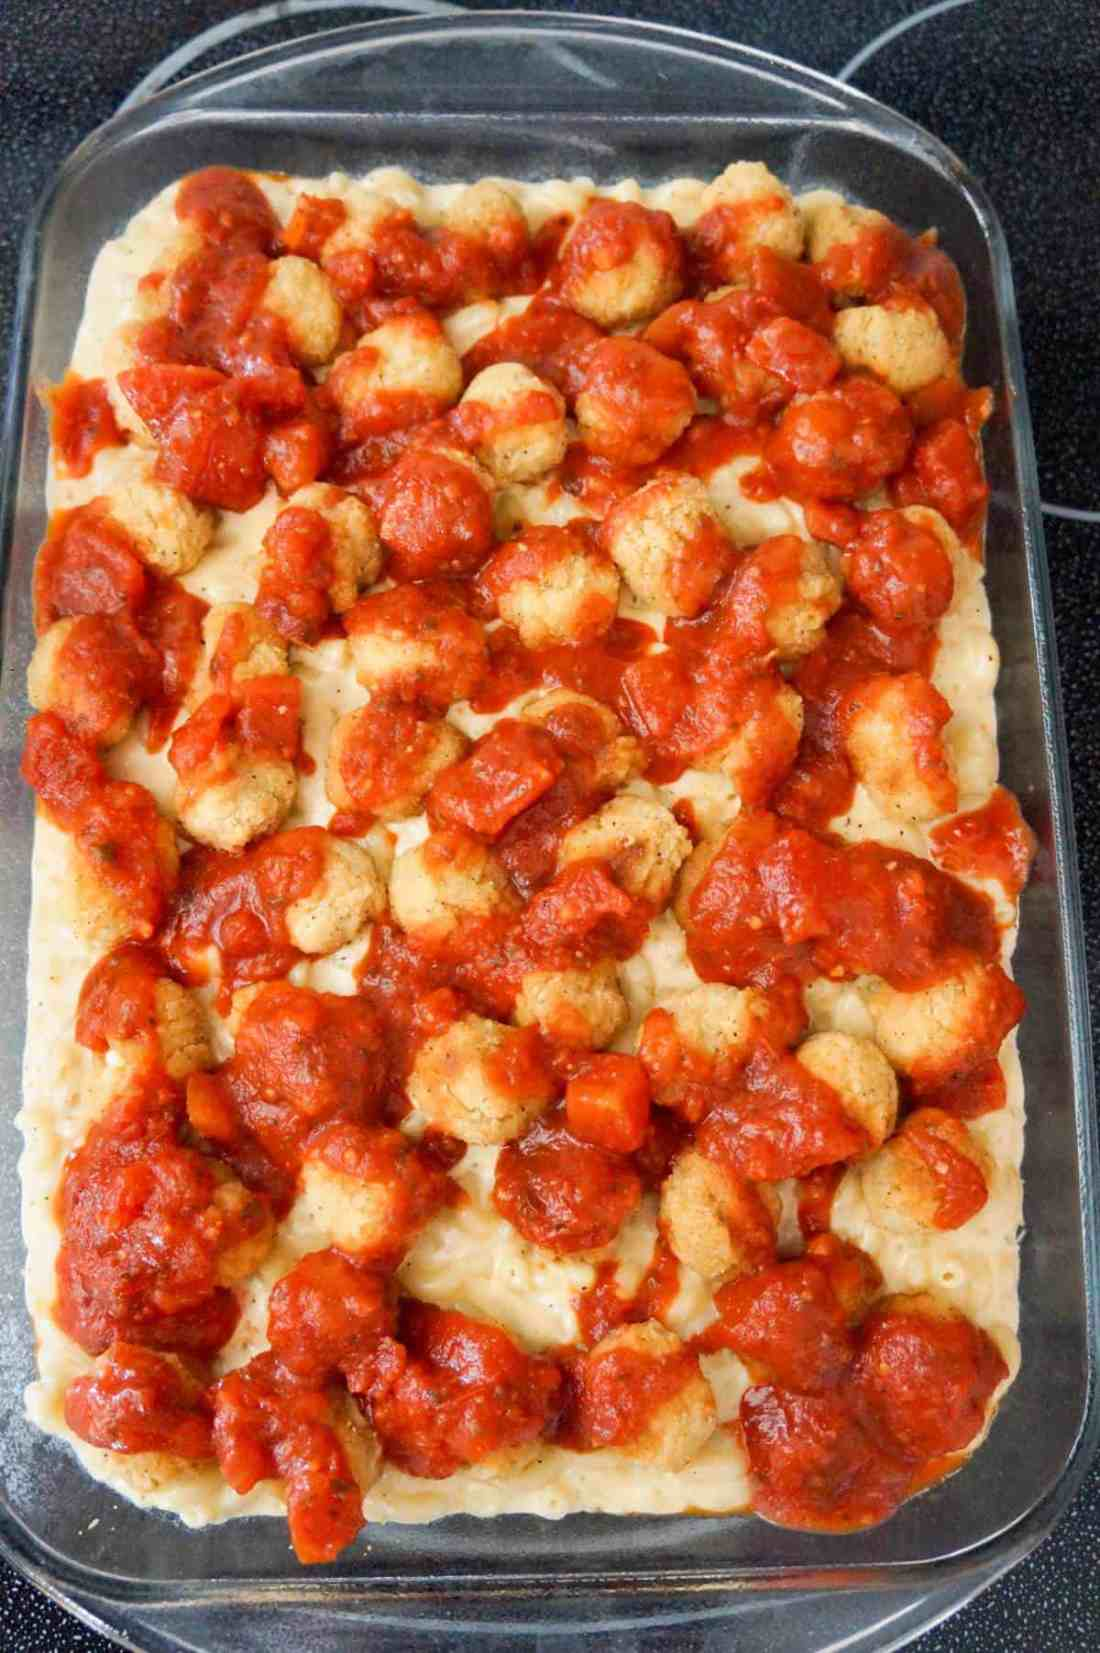 marinara sauce and popcorn chicken on top of mac and cheese in a baking dish